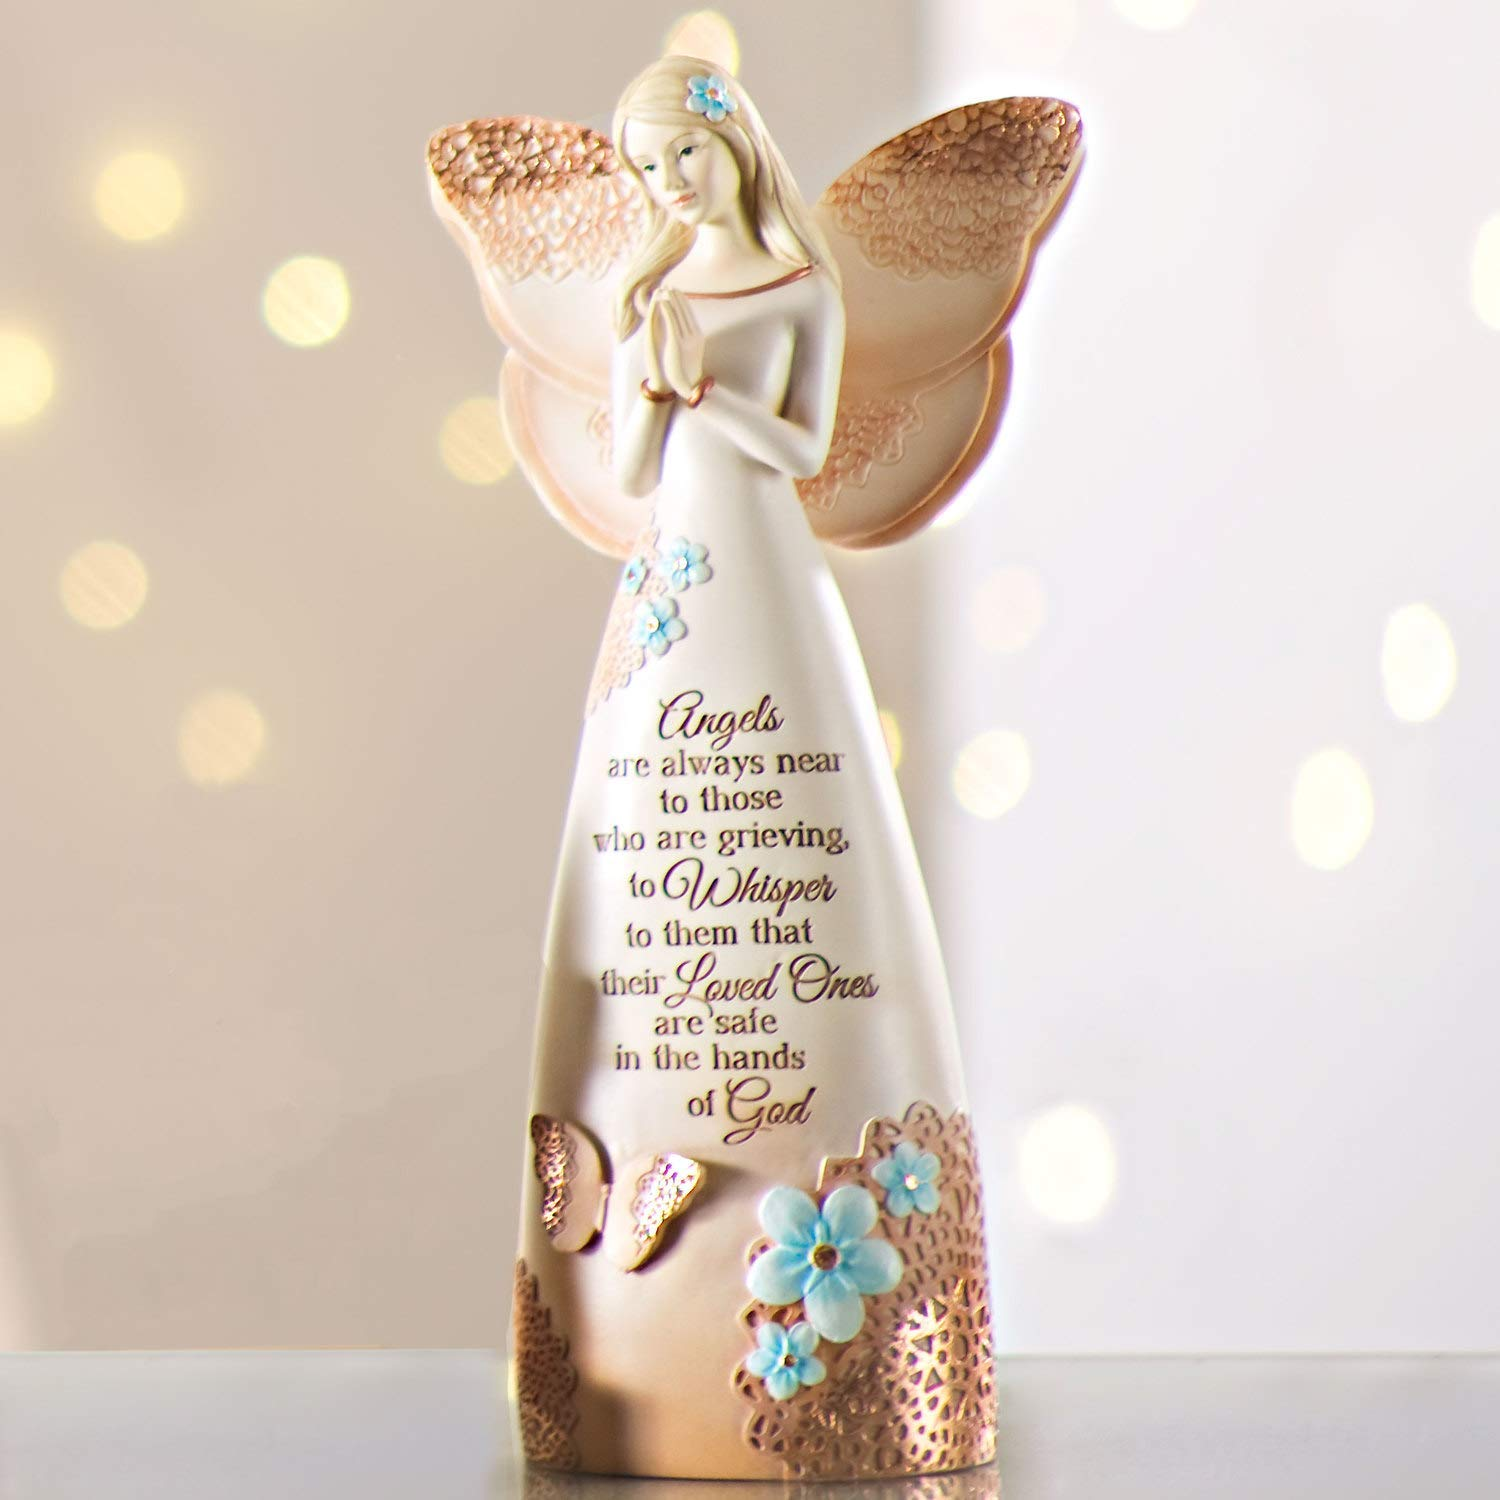 Pavilion Gift Company 19044 Light Your Way Memorial Loved Ones Angel Figurine 9-Inch